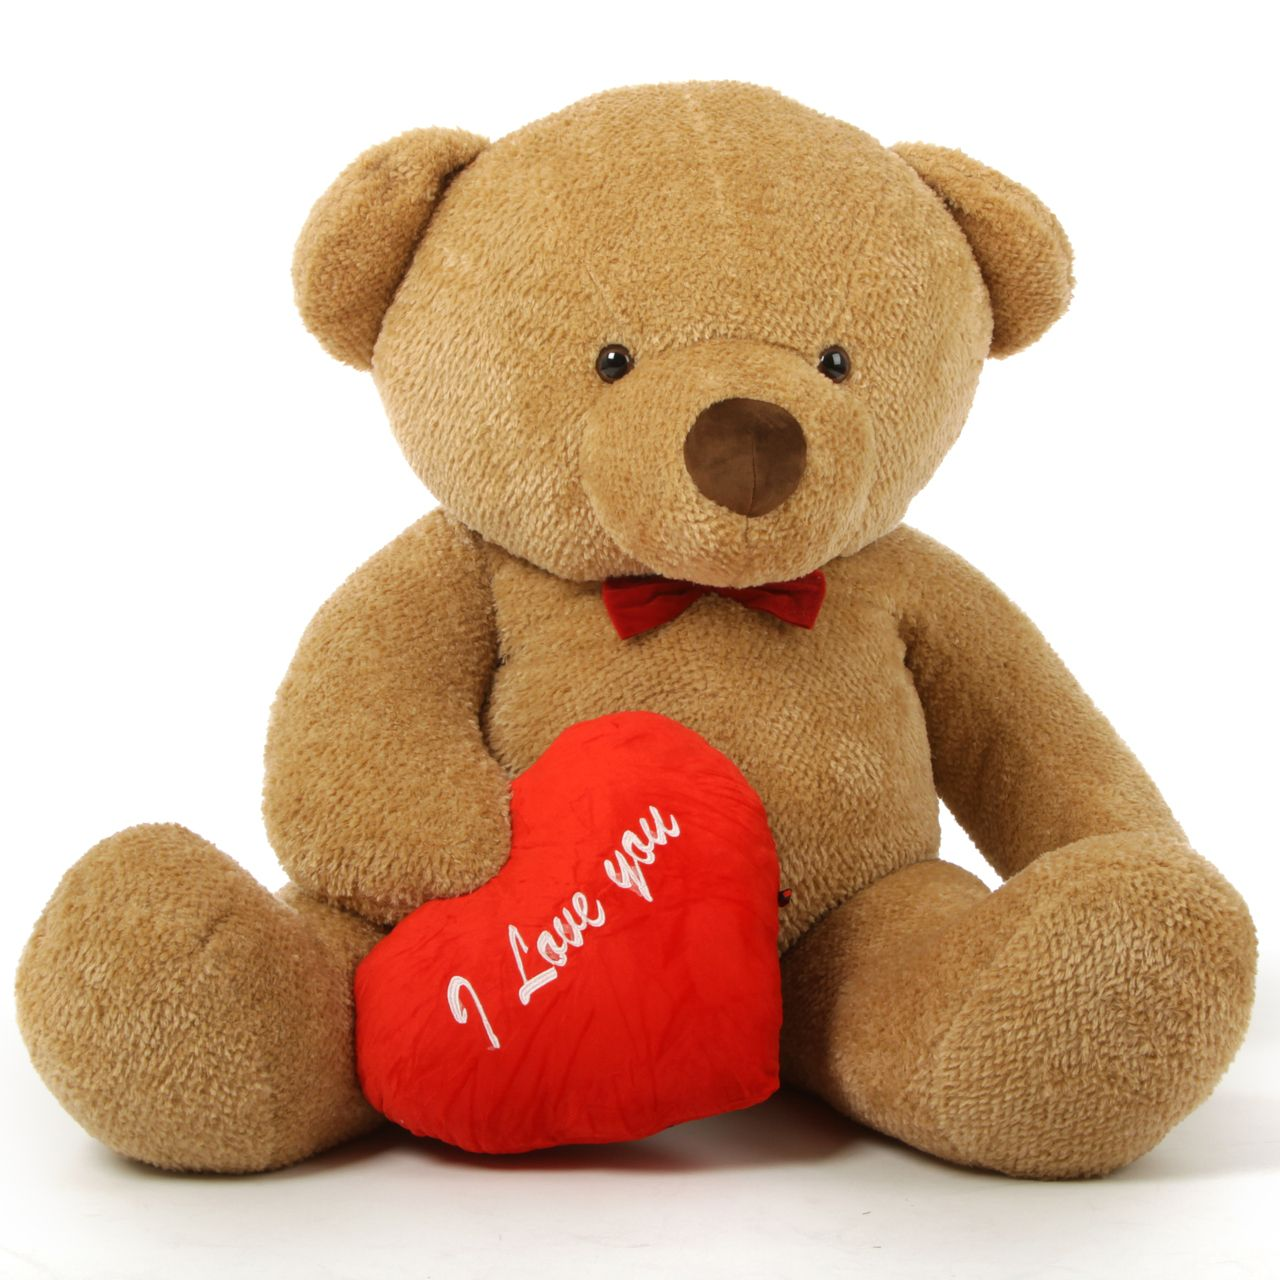 60in chubs giant valentines day teddy bears hold red i love you - Giant Teddy Bears For Valentines Day